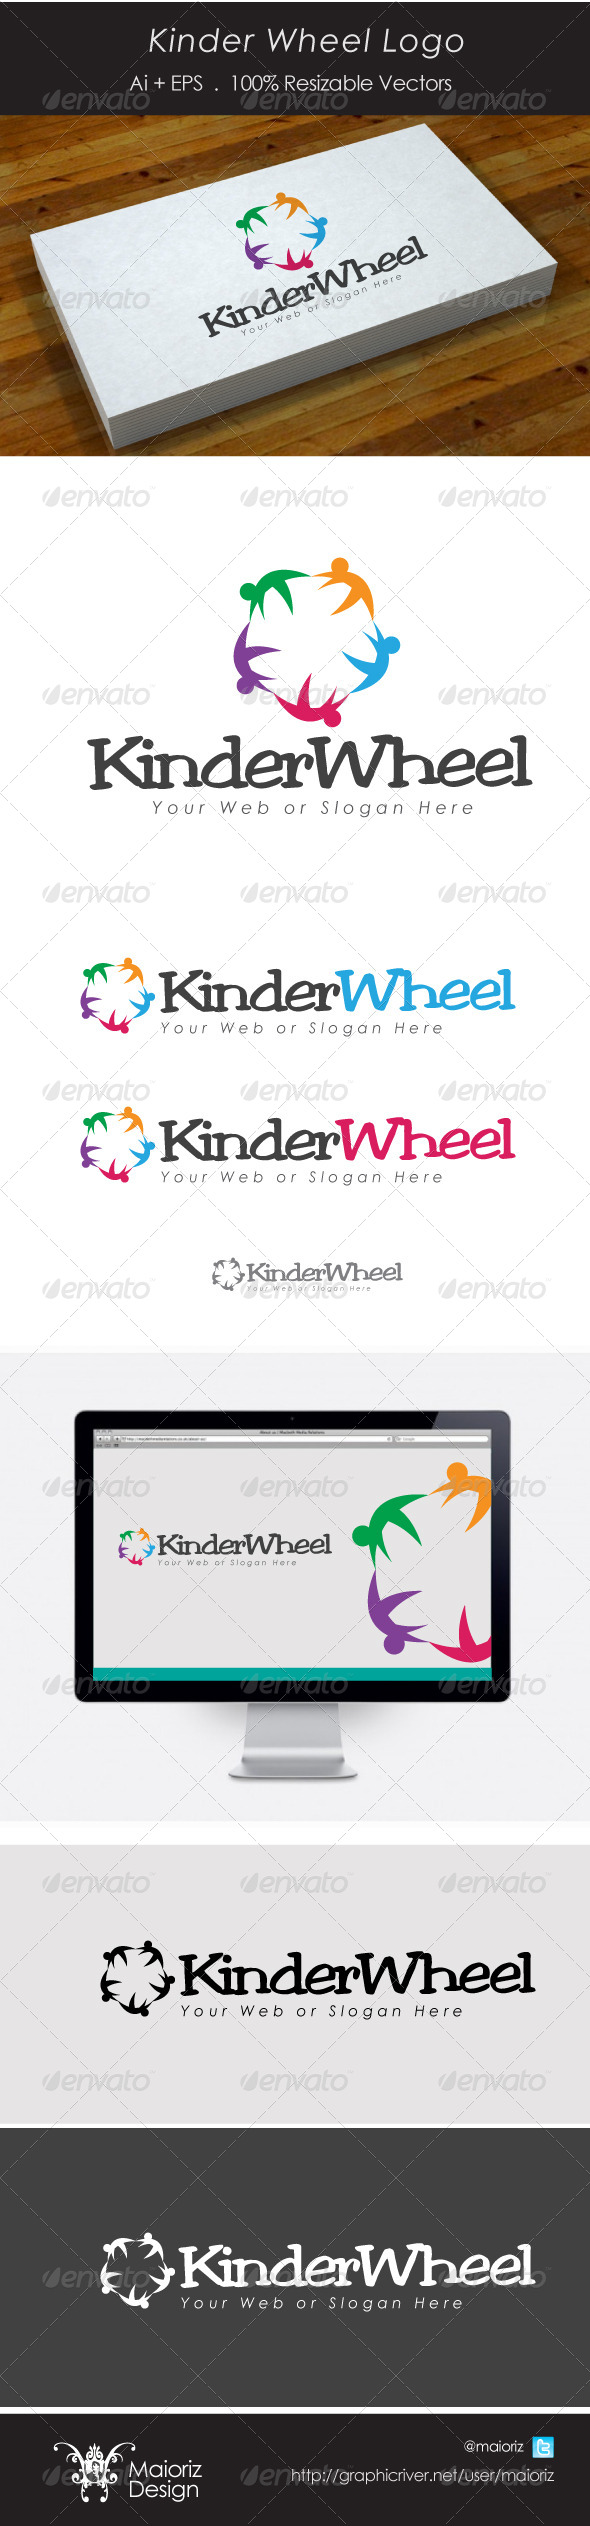 GraphicRiver Kinder Wheel Logo 4328069